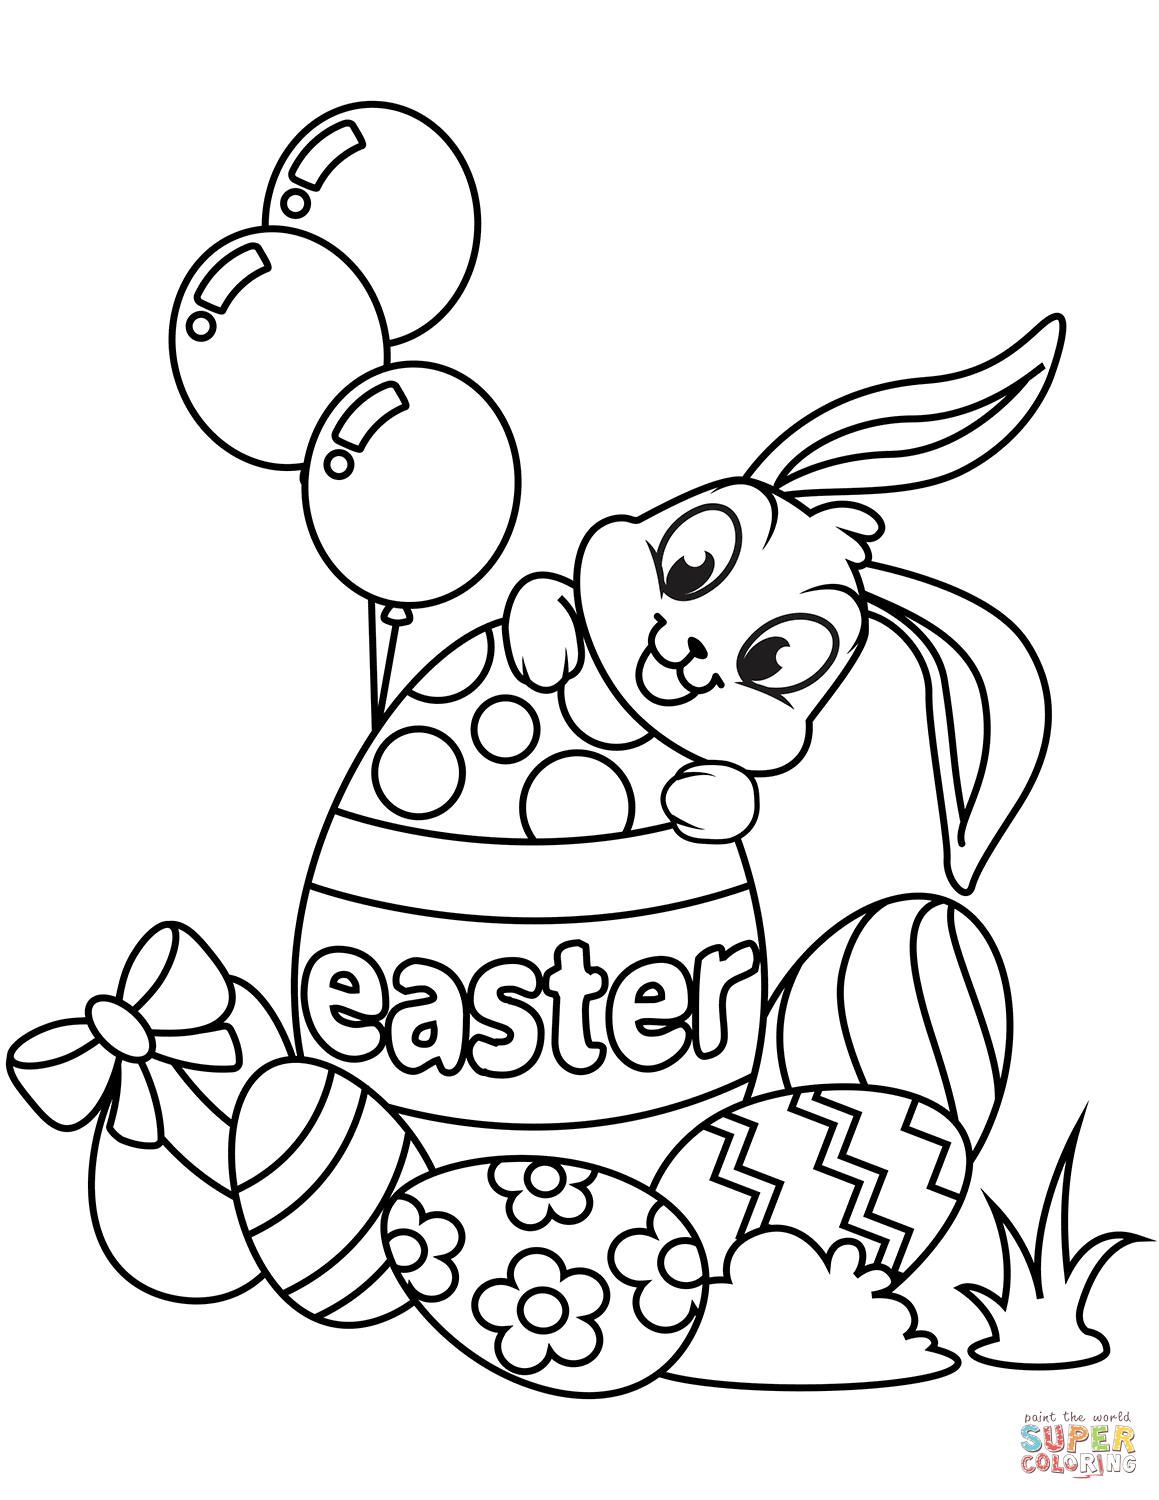 coloring easter bunnies cute easter bunny and eggs coloring page free printable bunnies easter coloring